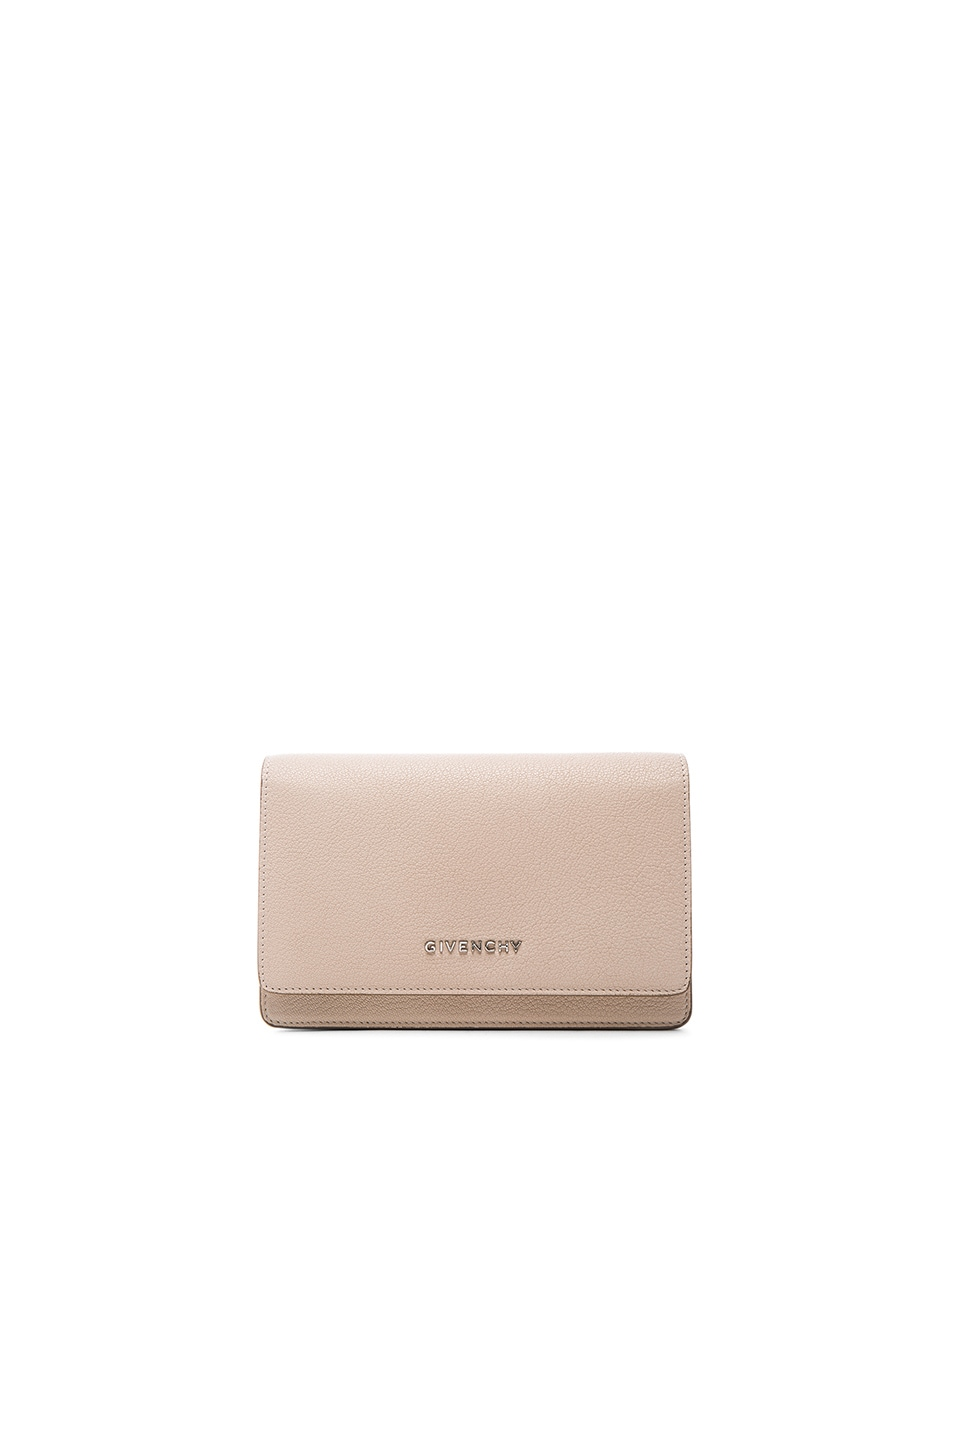 Image 1 of Givenchy Pandora Chain Wallet in Nude Pink